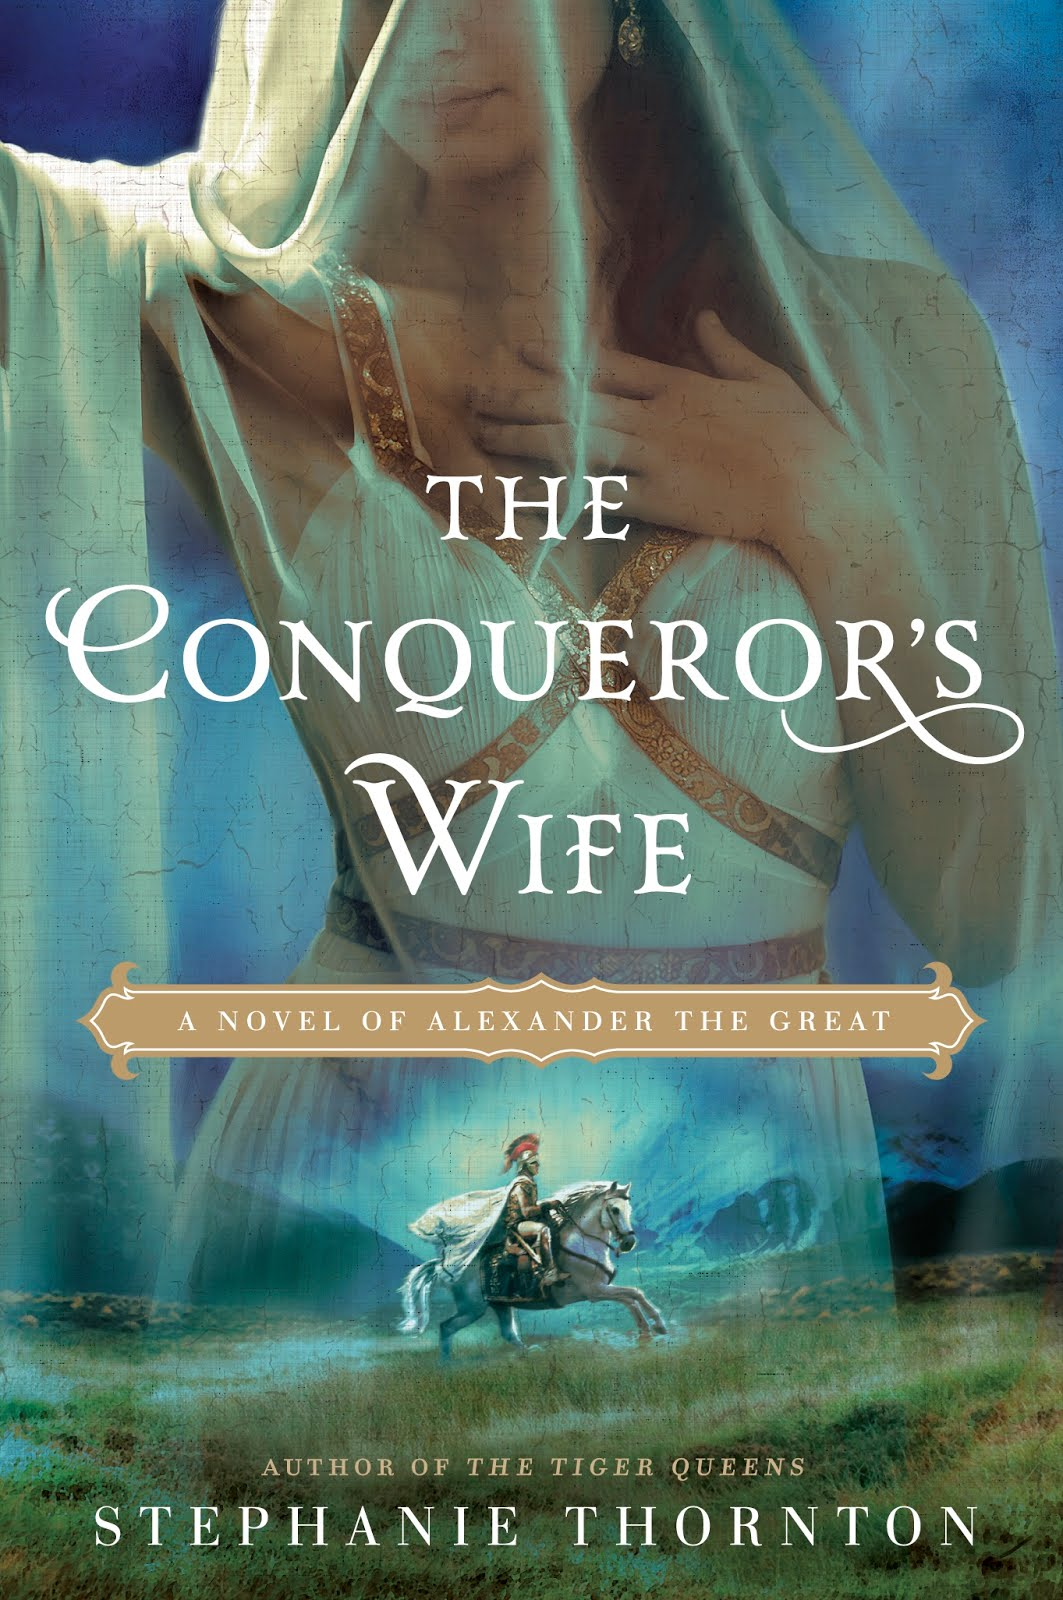 Pre-order THE CONQUEROR'S WIFE (Dec. 1, 2015)